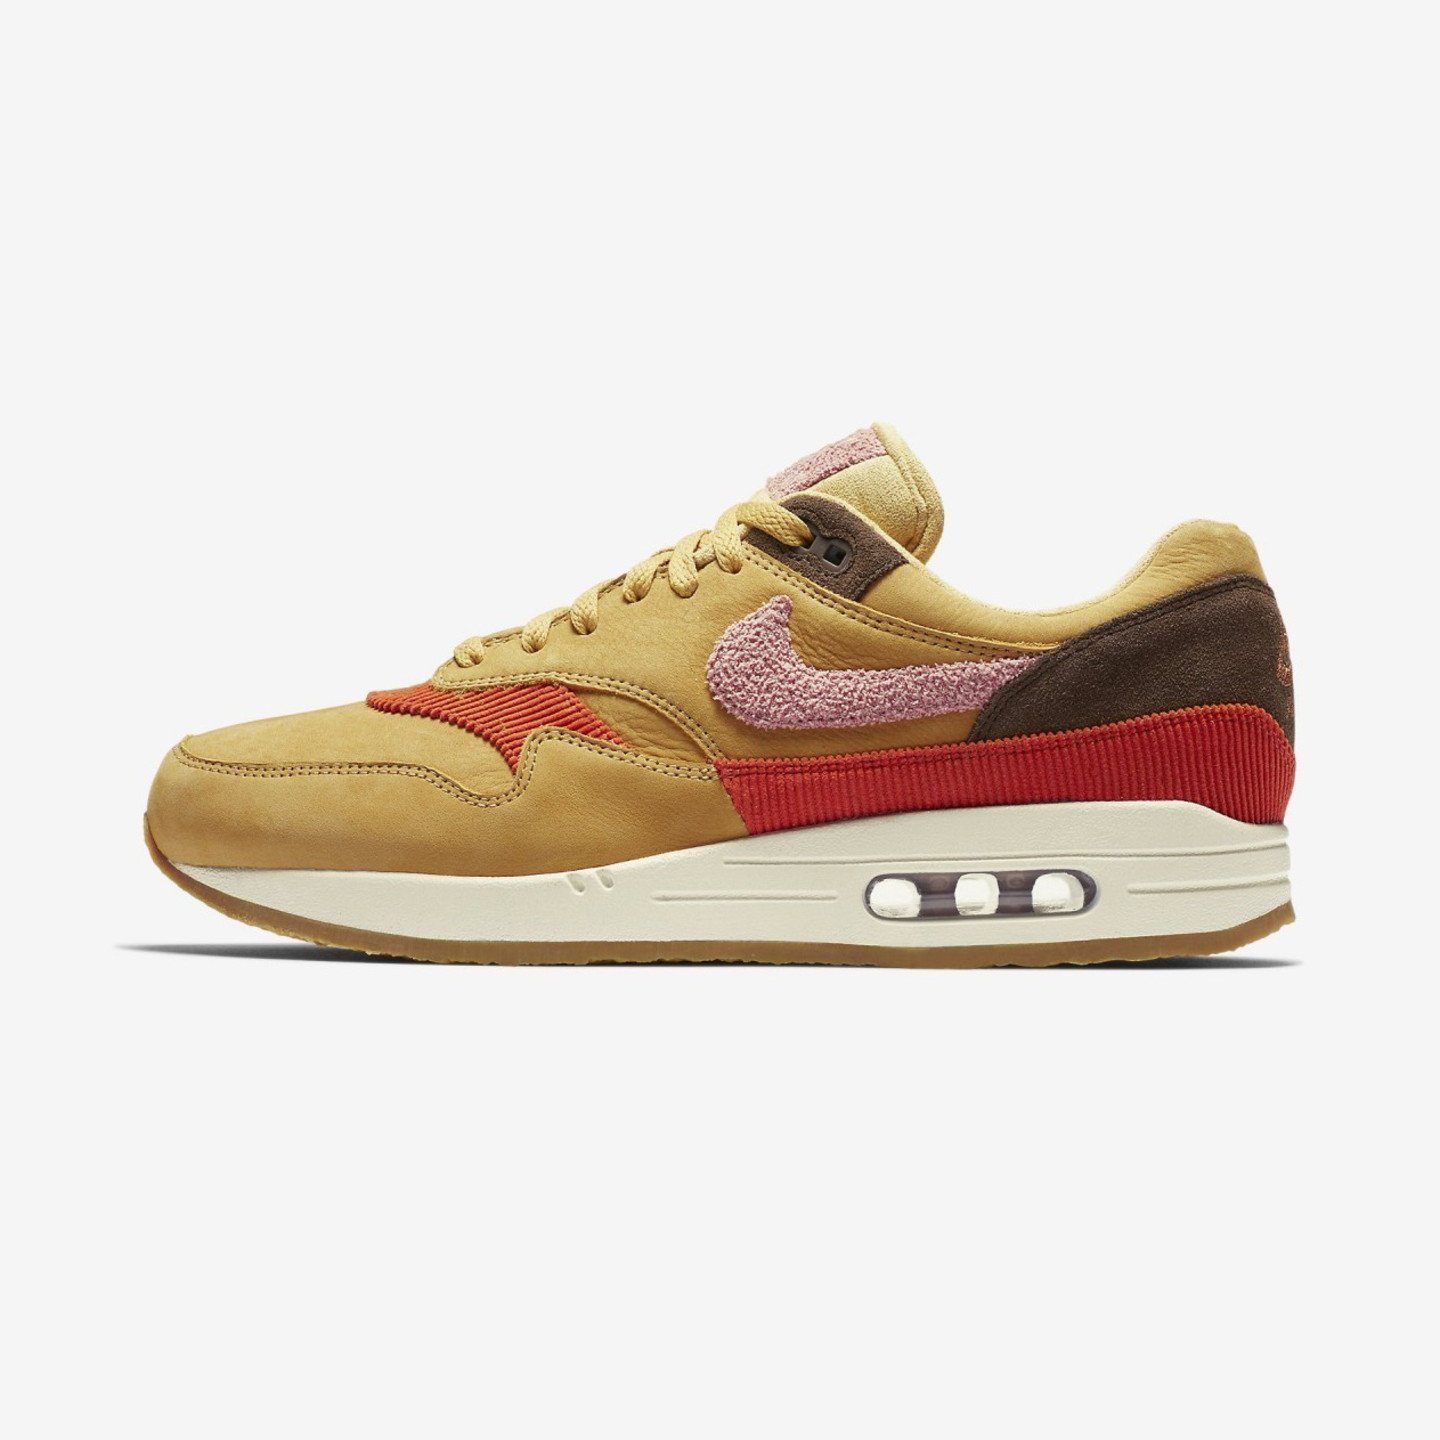 Nike Air Max 1 Crepe Wheat Gold / Rust Pink / Baroque Brown CD7861-700